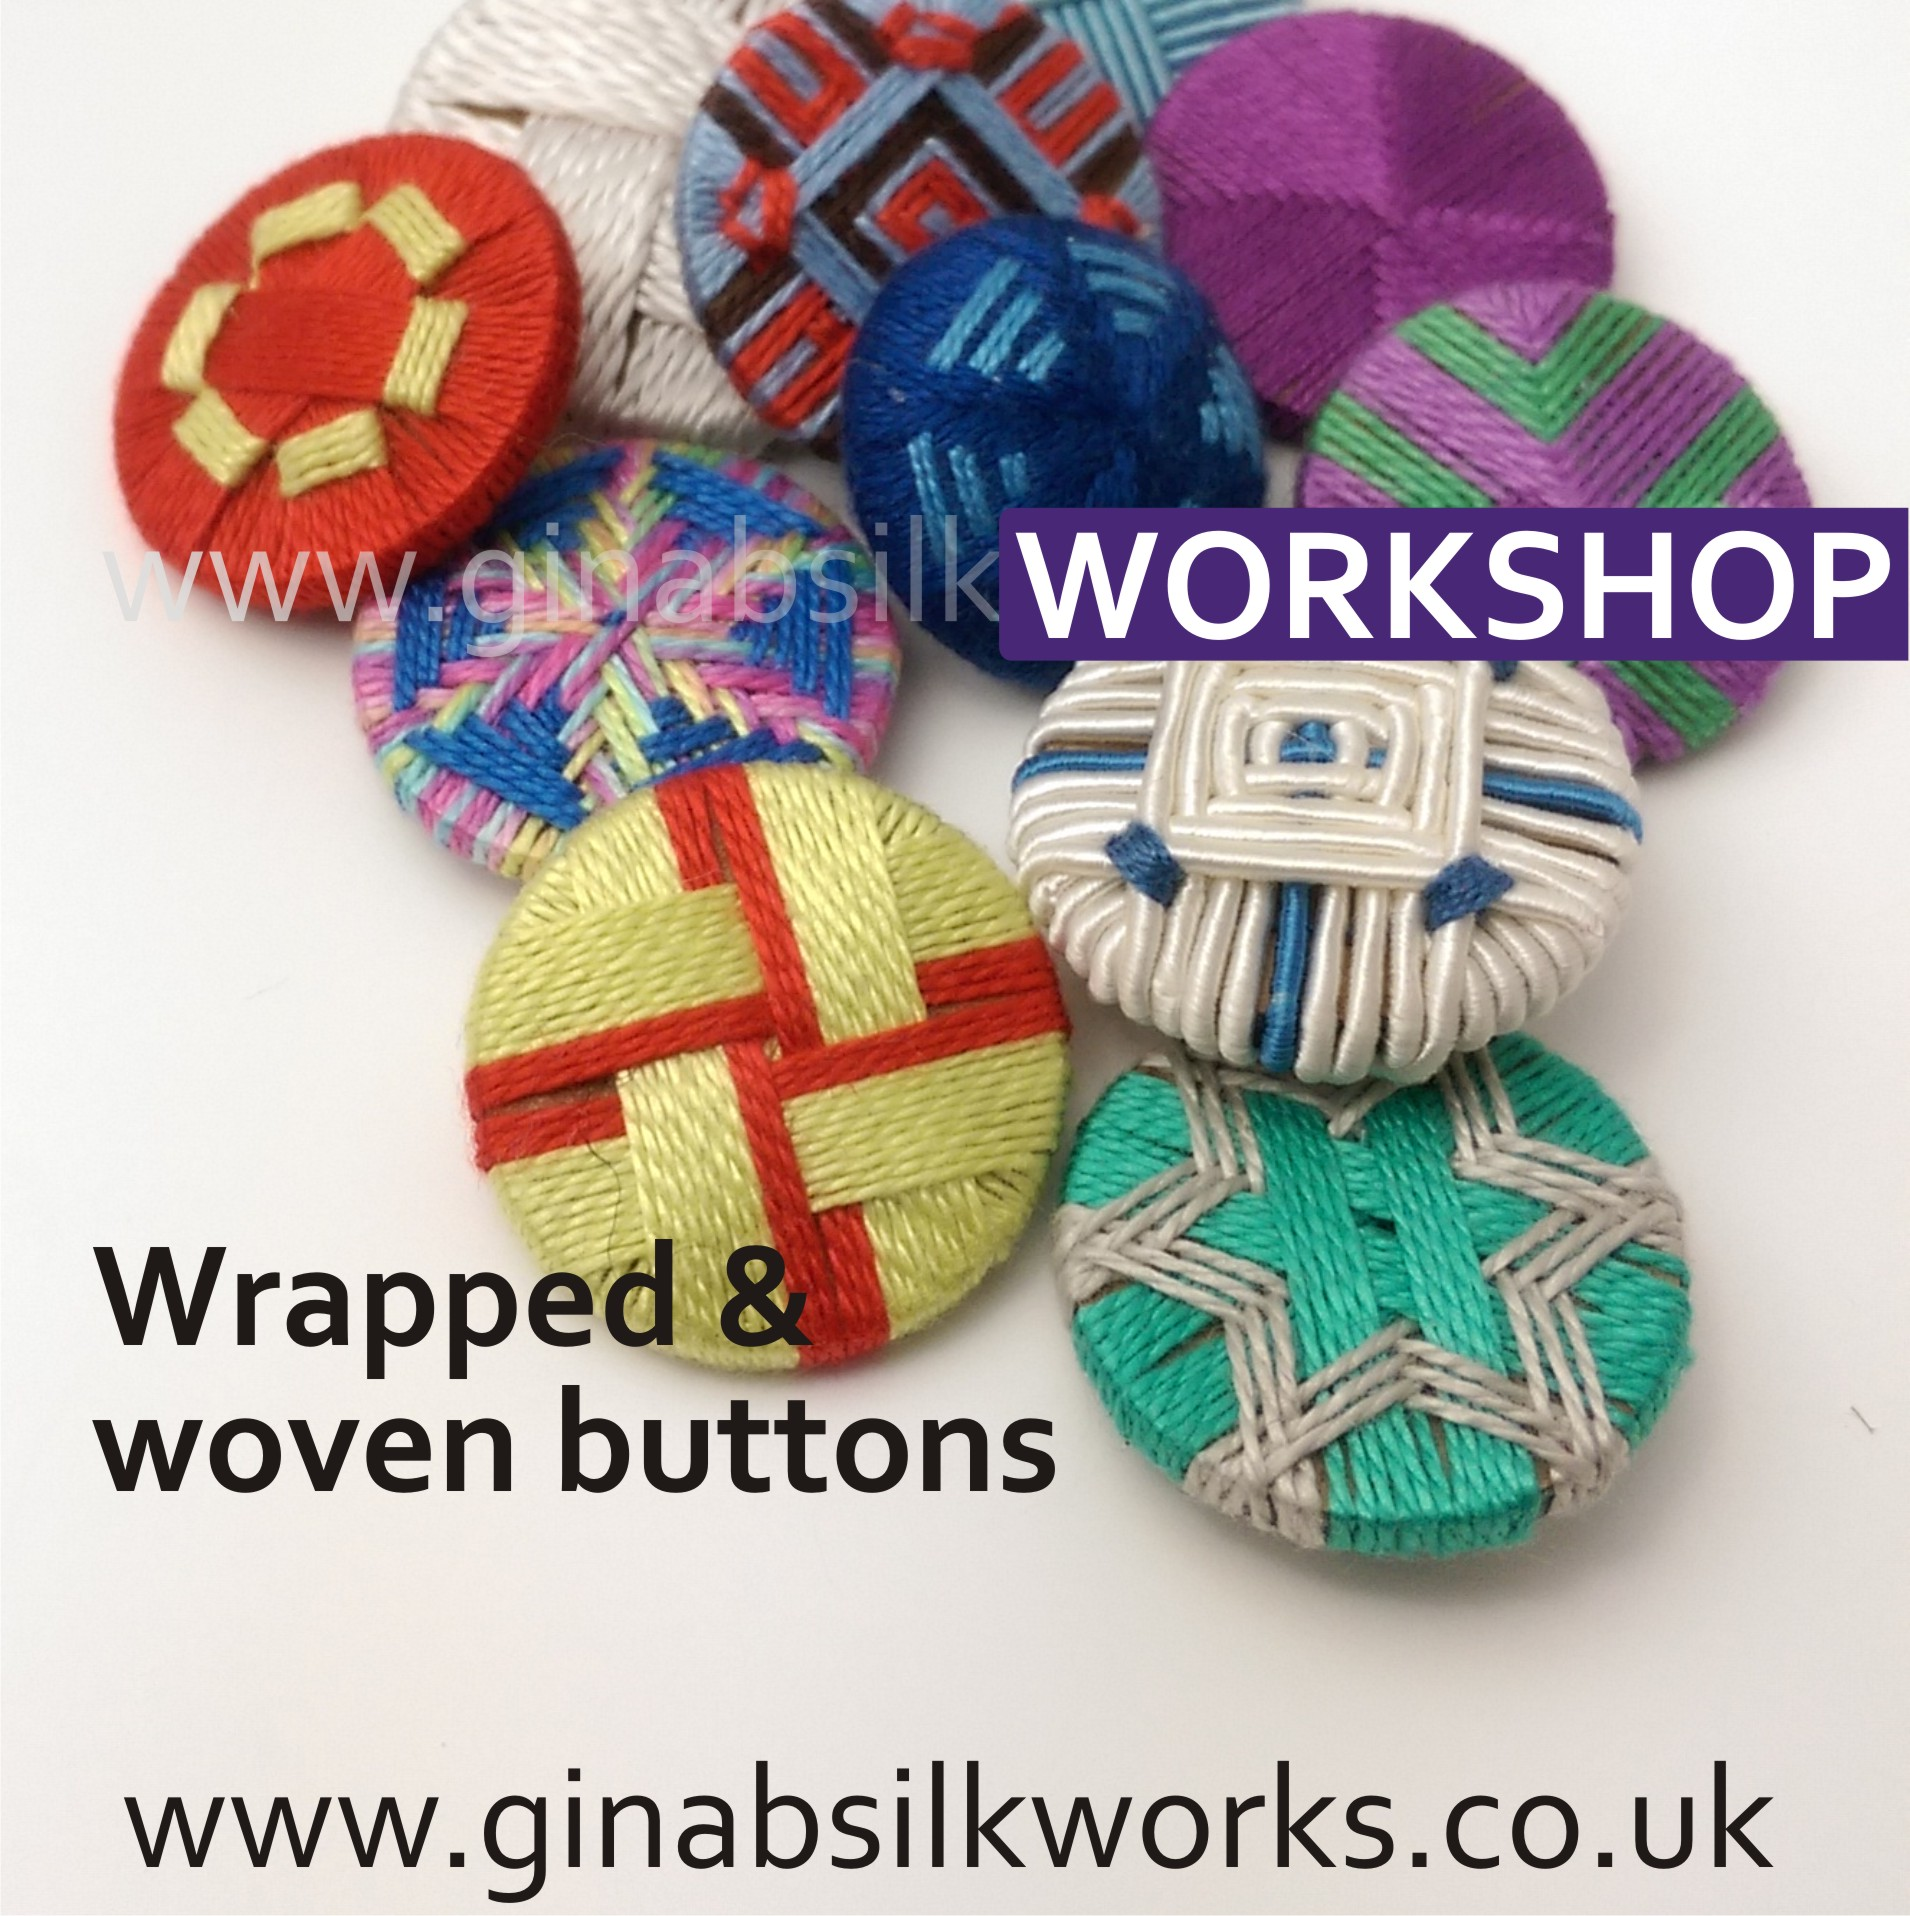 Wrapped & Woven Buttons Workshop